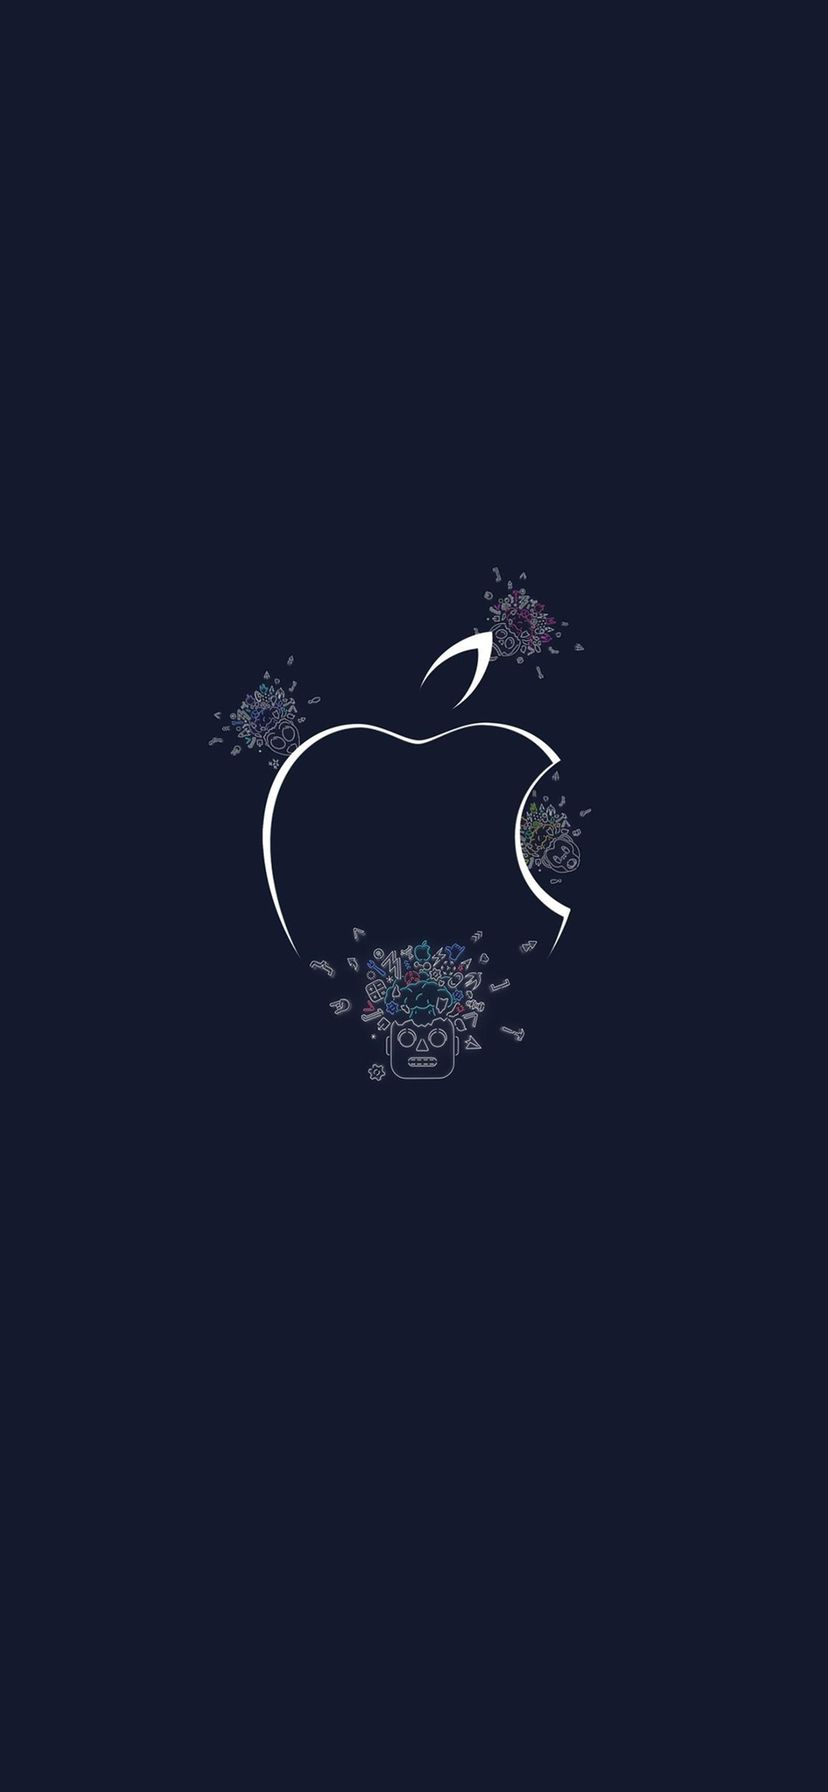 Wwdc 2019 By Ar7 Normal And Black For Oleds Apple Logo Wallpaper Iphone Apple Wallpaper Iphone Apple Logo Wallpaper